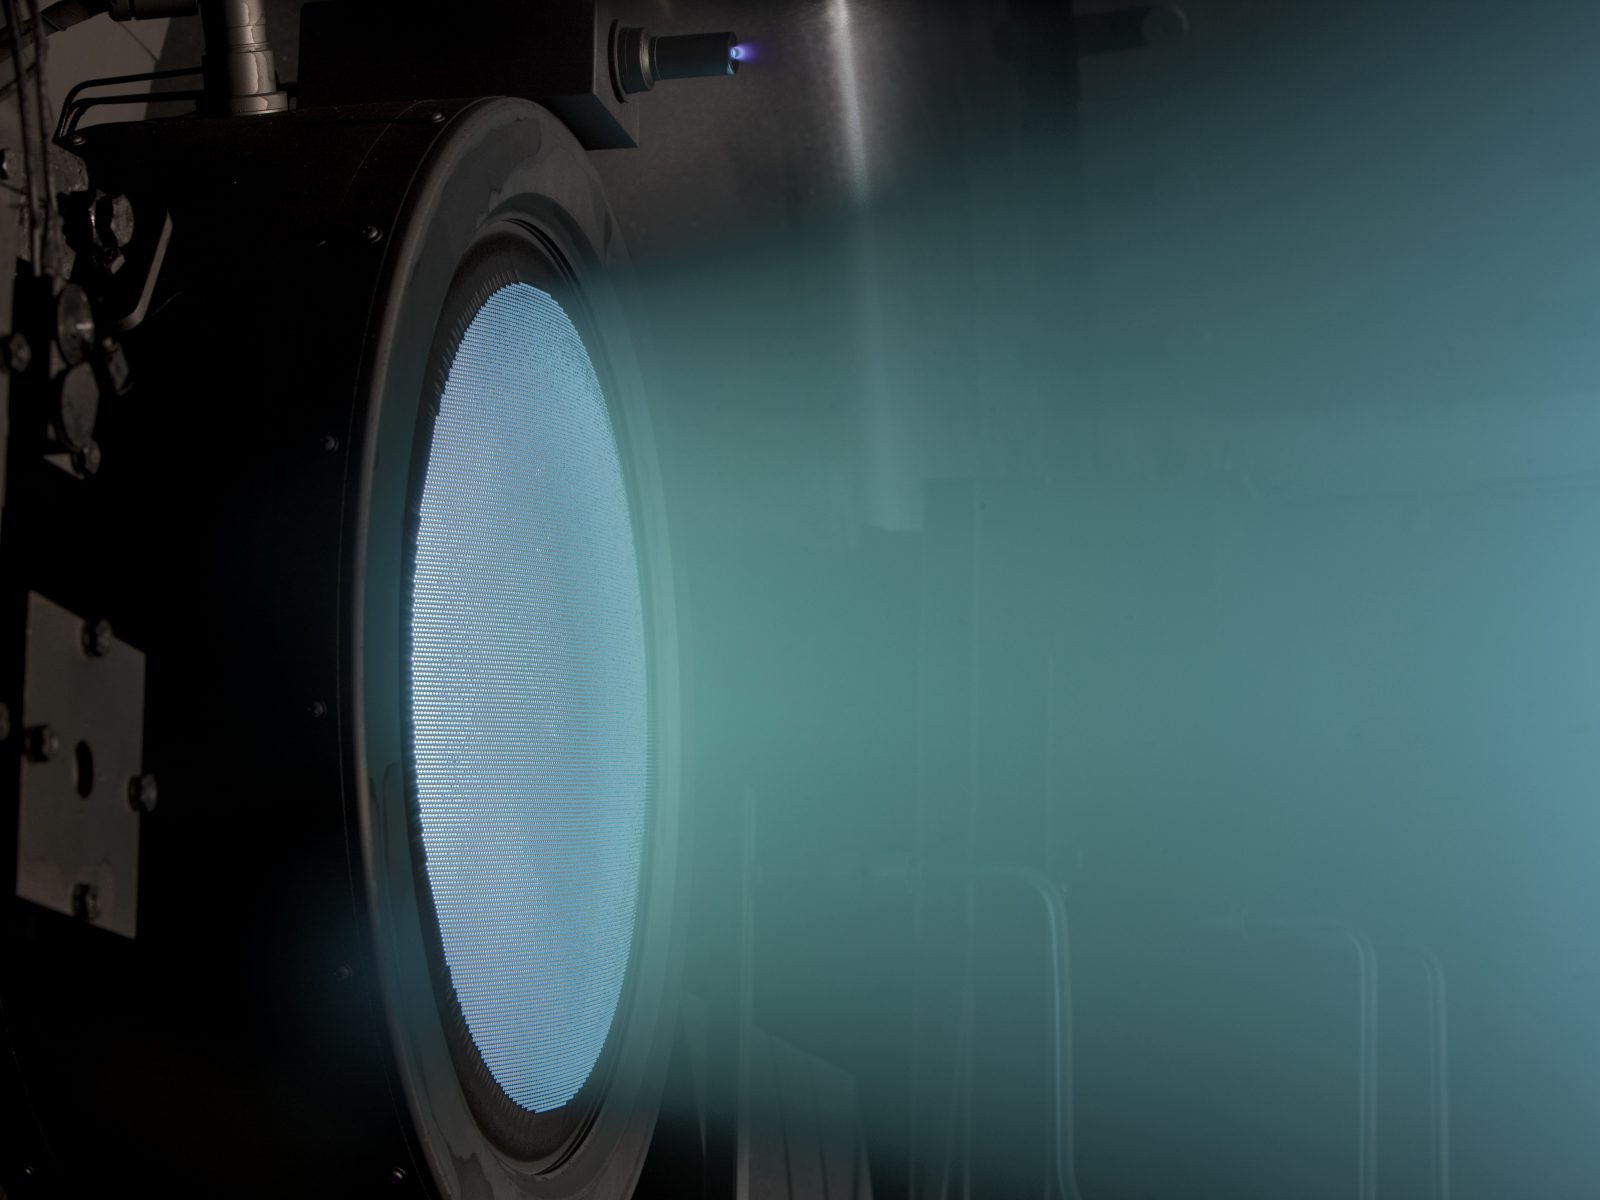 08-test-moteur-fusee-nasa-evolutionary-xenon-thruster